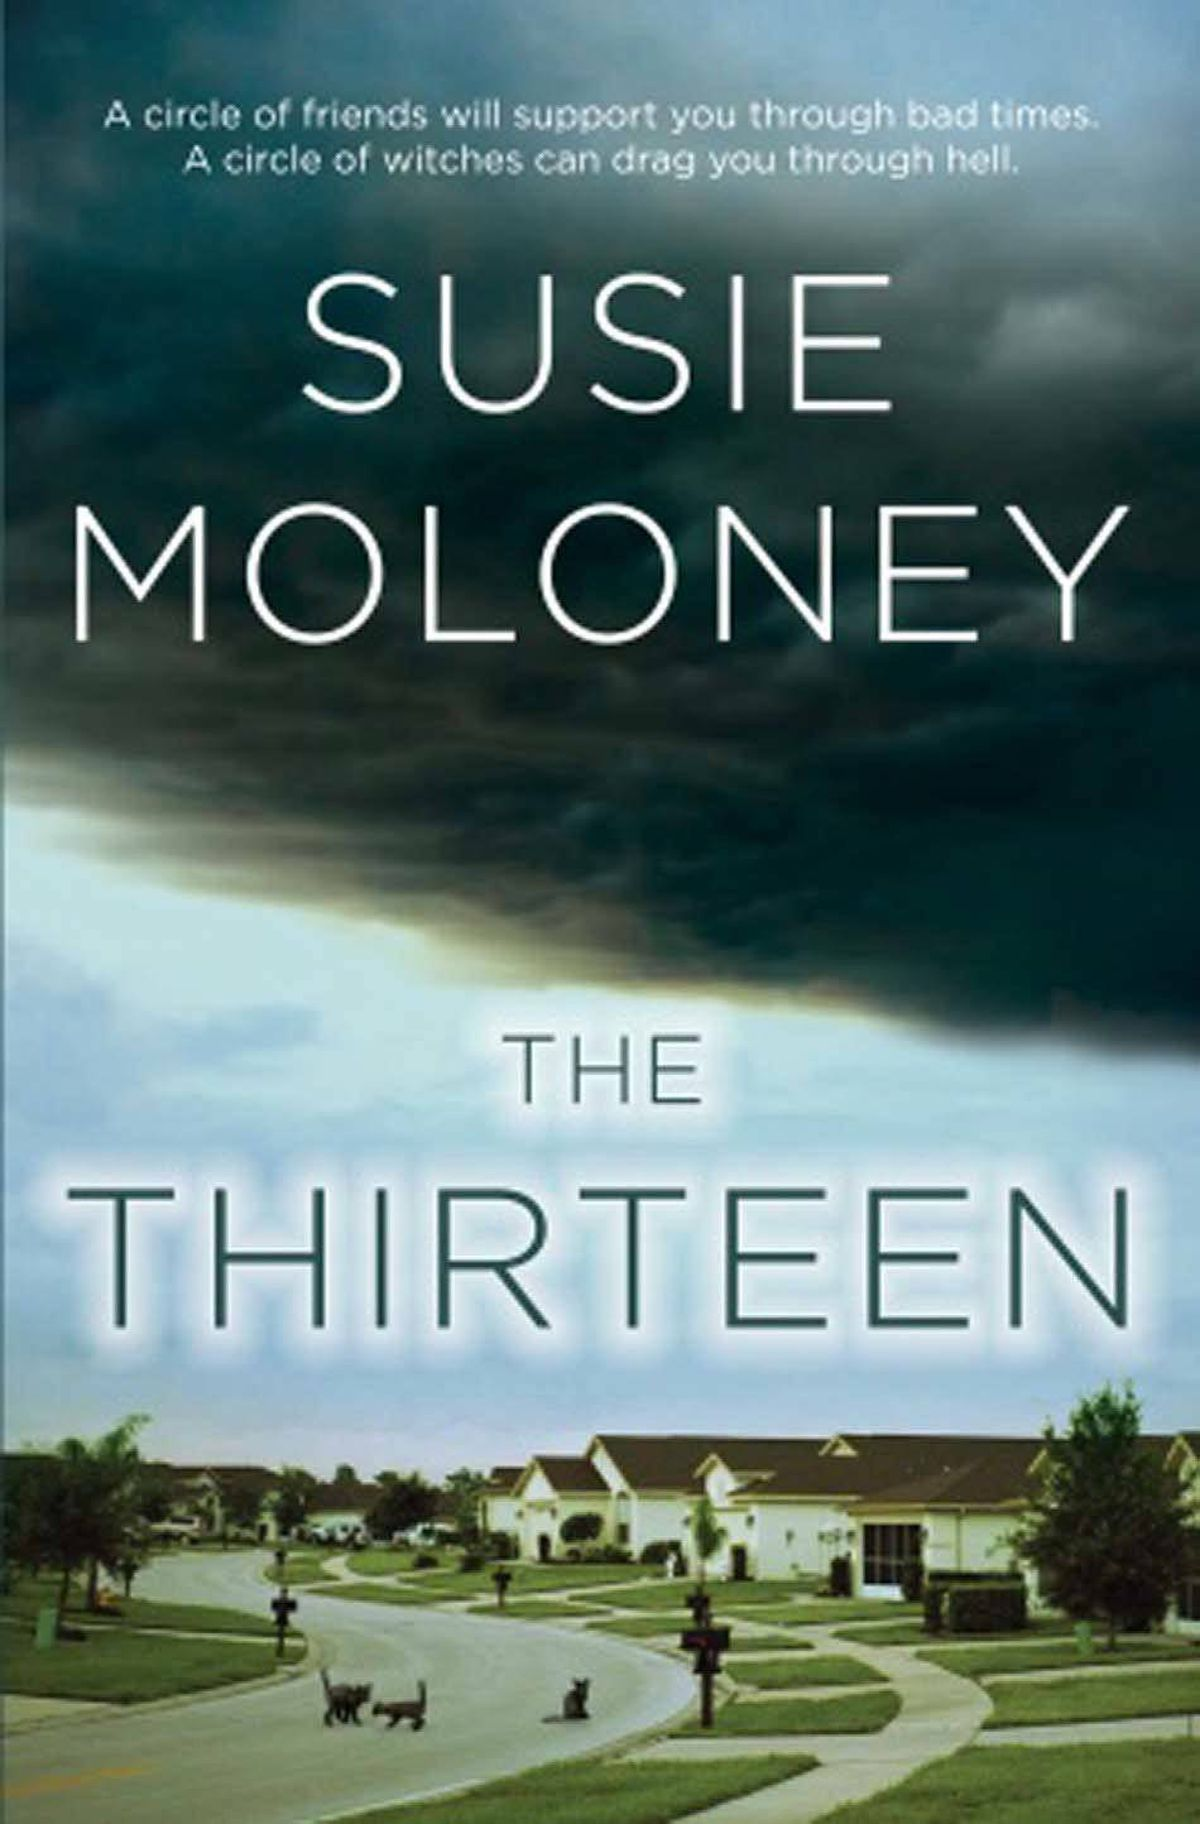 THE THIRTEEN By Susie Moloney (Random House Canada) Haven Woods is a suburban idyll: quiet streets, good schools, friendly neighbours and a bit of blood sacrifice and demon worship, the price of keeping life blessed for a coven of 13 women. Moloney has constructed a compellingly uncanny narrative, binding the tropes of small-town paranoia and cliquishness with the chokehold of family obligations and religious fervour. – Sandra Kasturi